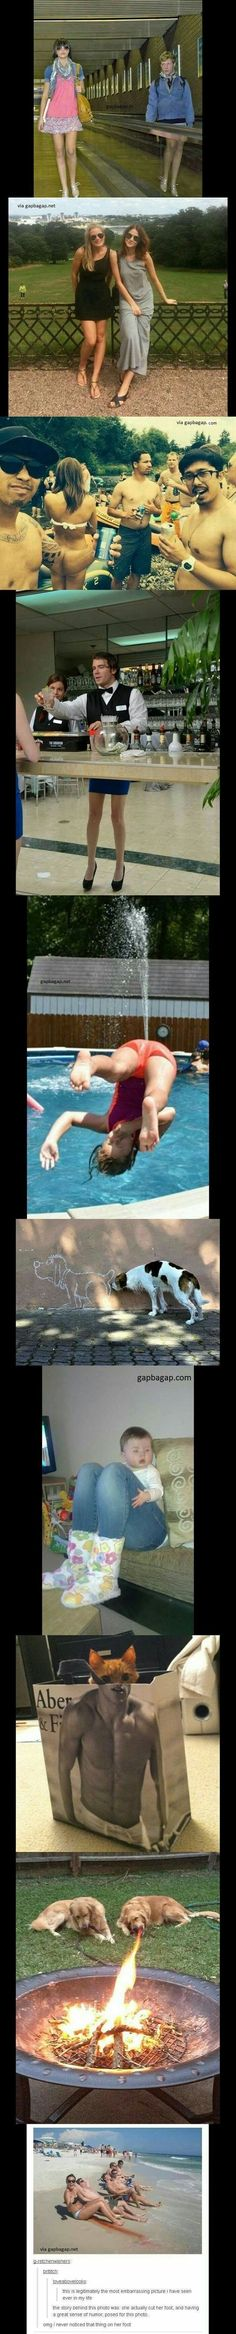 Top 10 Funny Perfectly Timed Photos